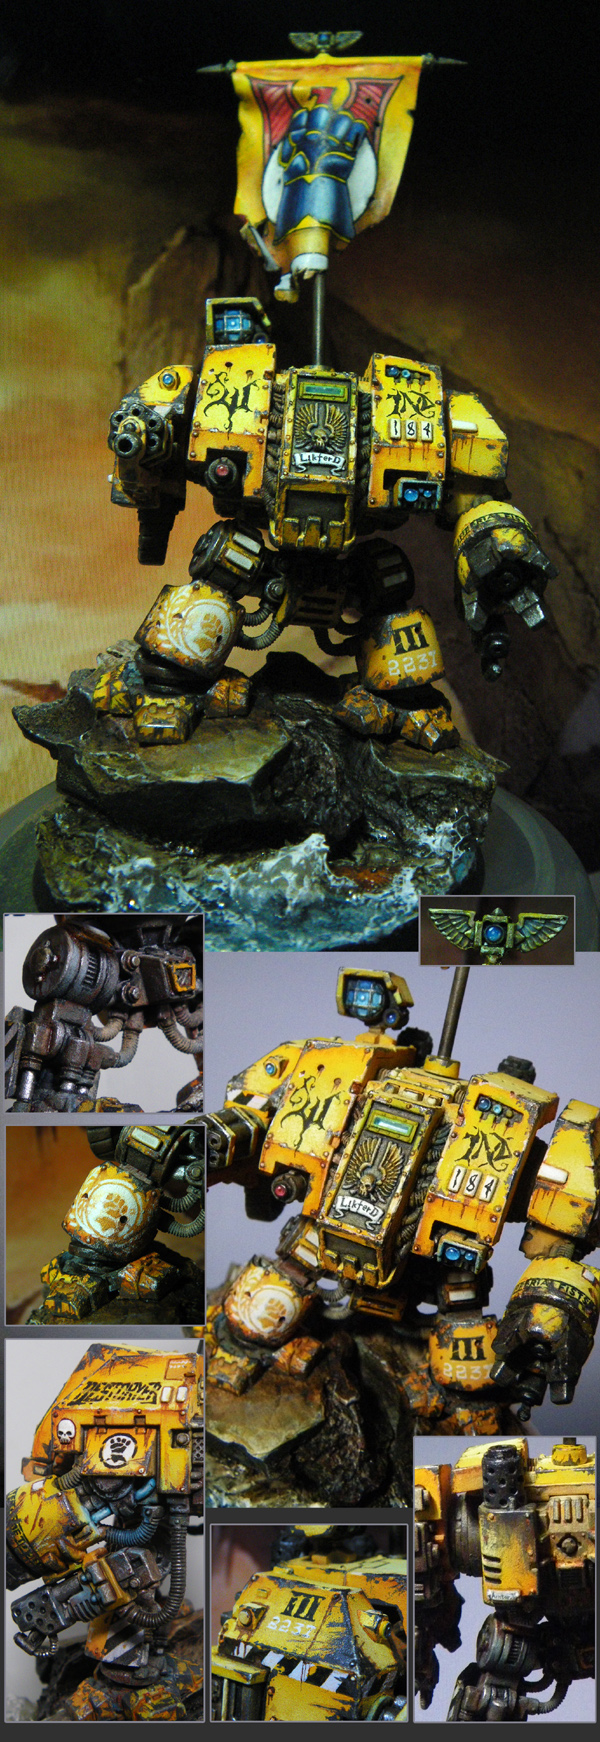 ImperialFists Dreadnought